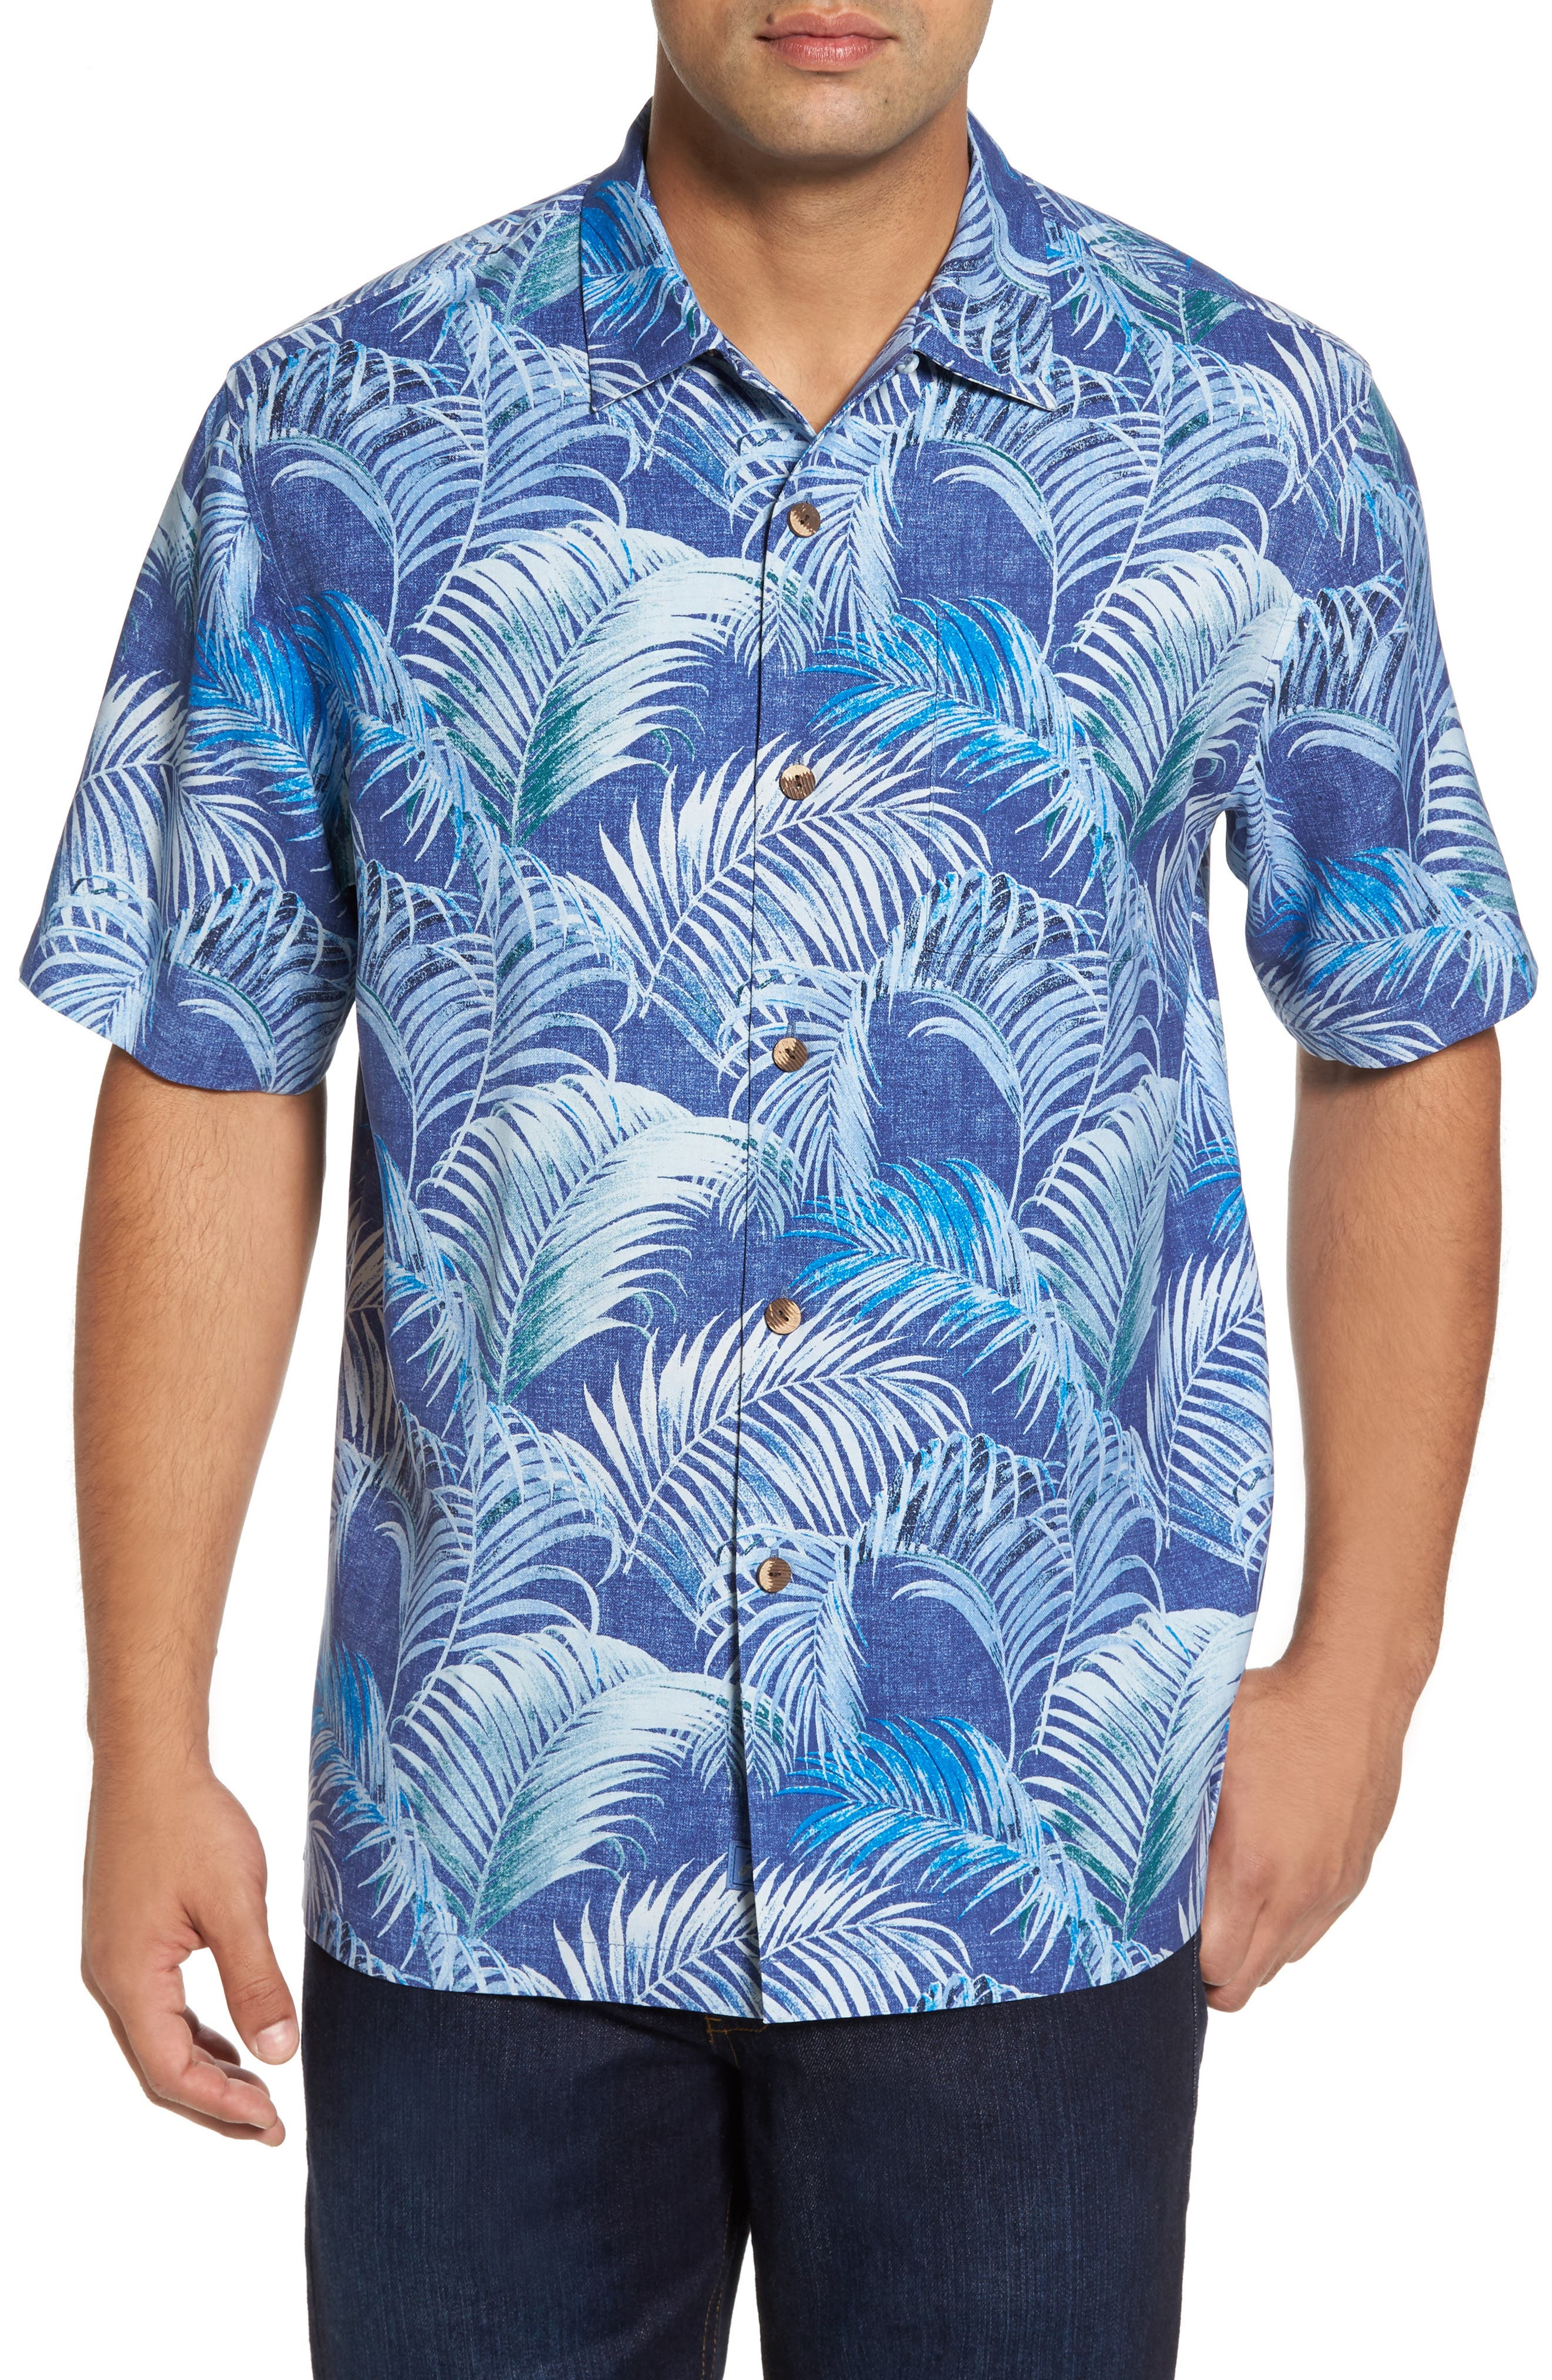 Garden of Hope and Courage Silk Camp Shirt,                         Main,                         color, Eclipse